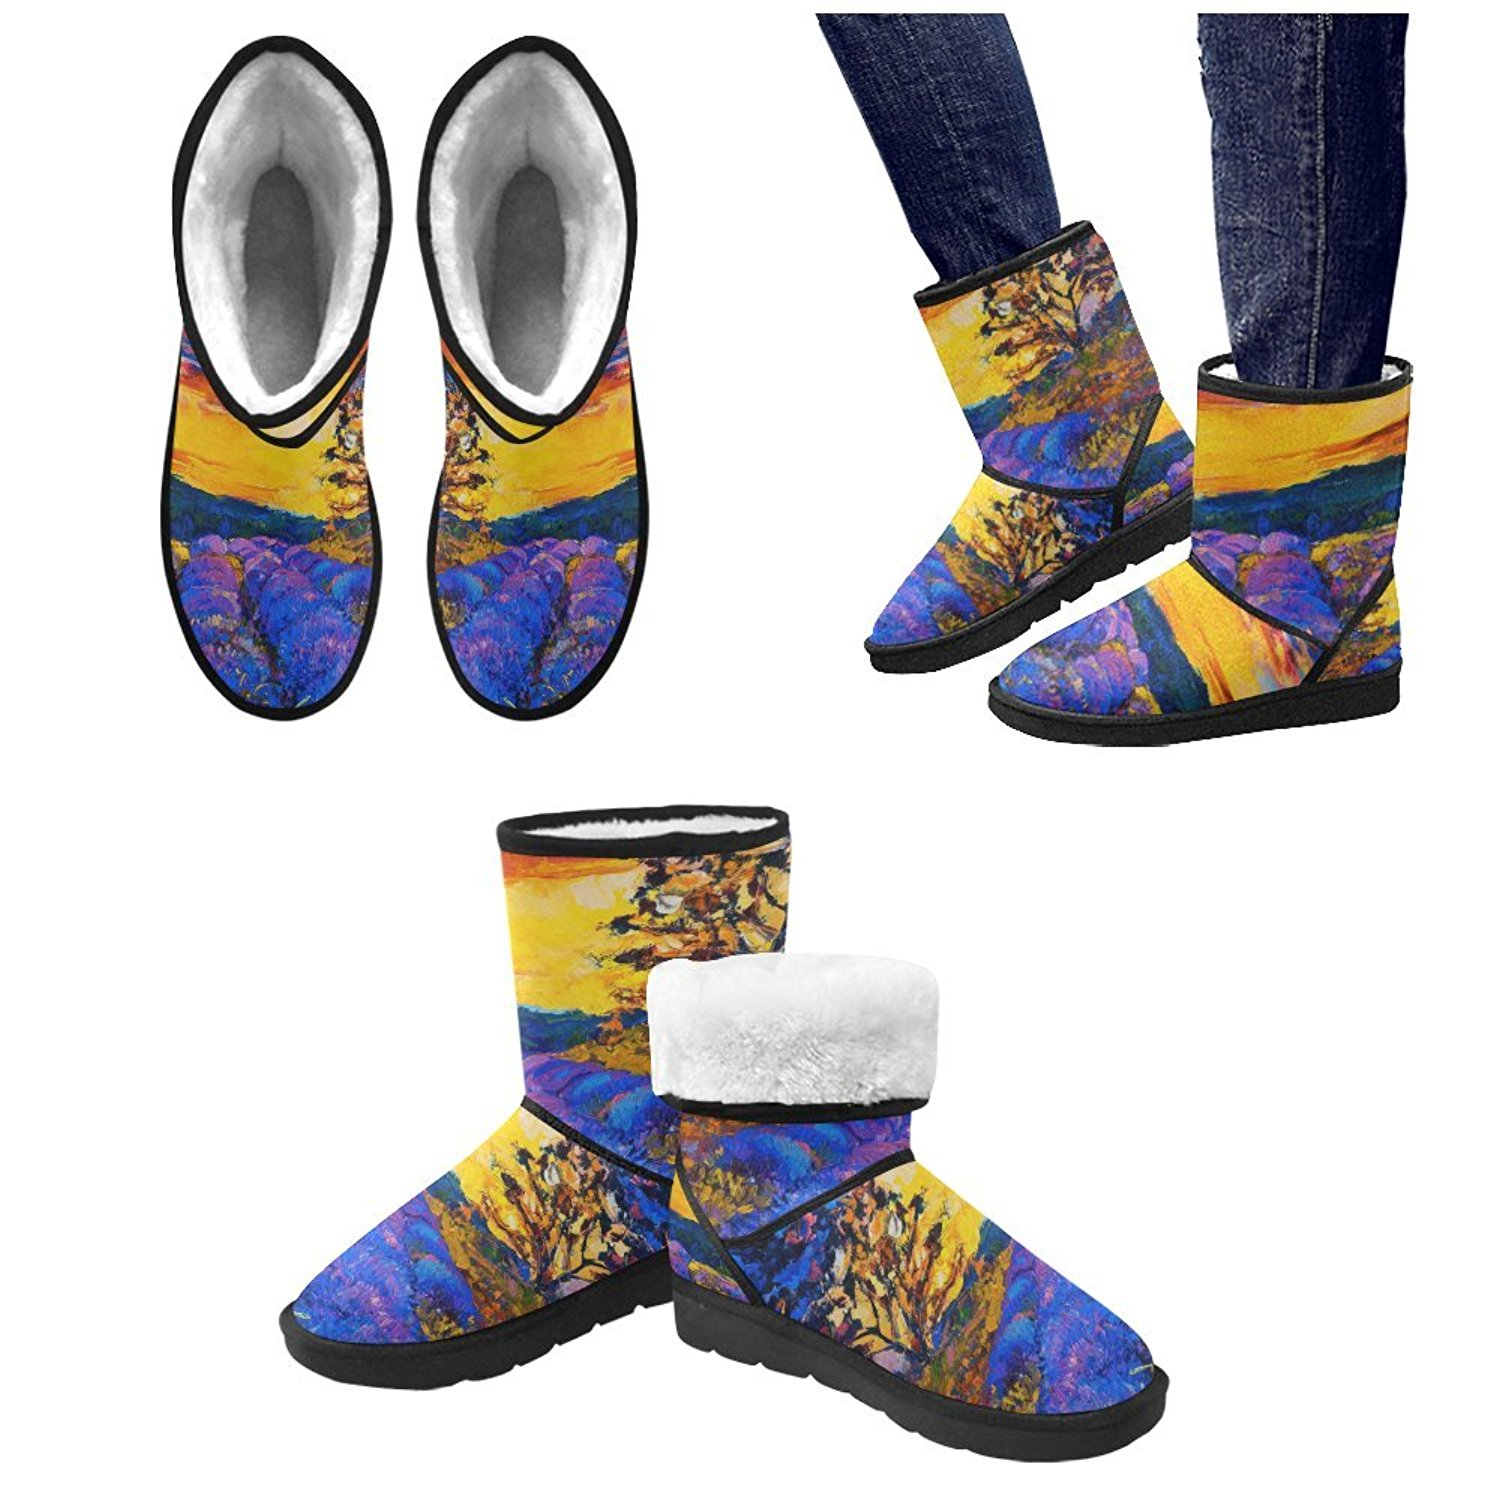 ca8206d5a6d Get Quotations · Artsadd Winter Boots Beautiful Lavender Field At Sunset  Unisex Snow Boots